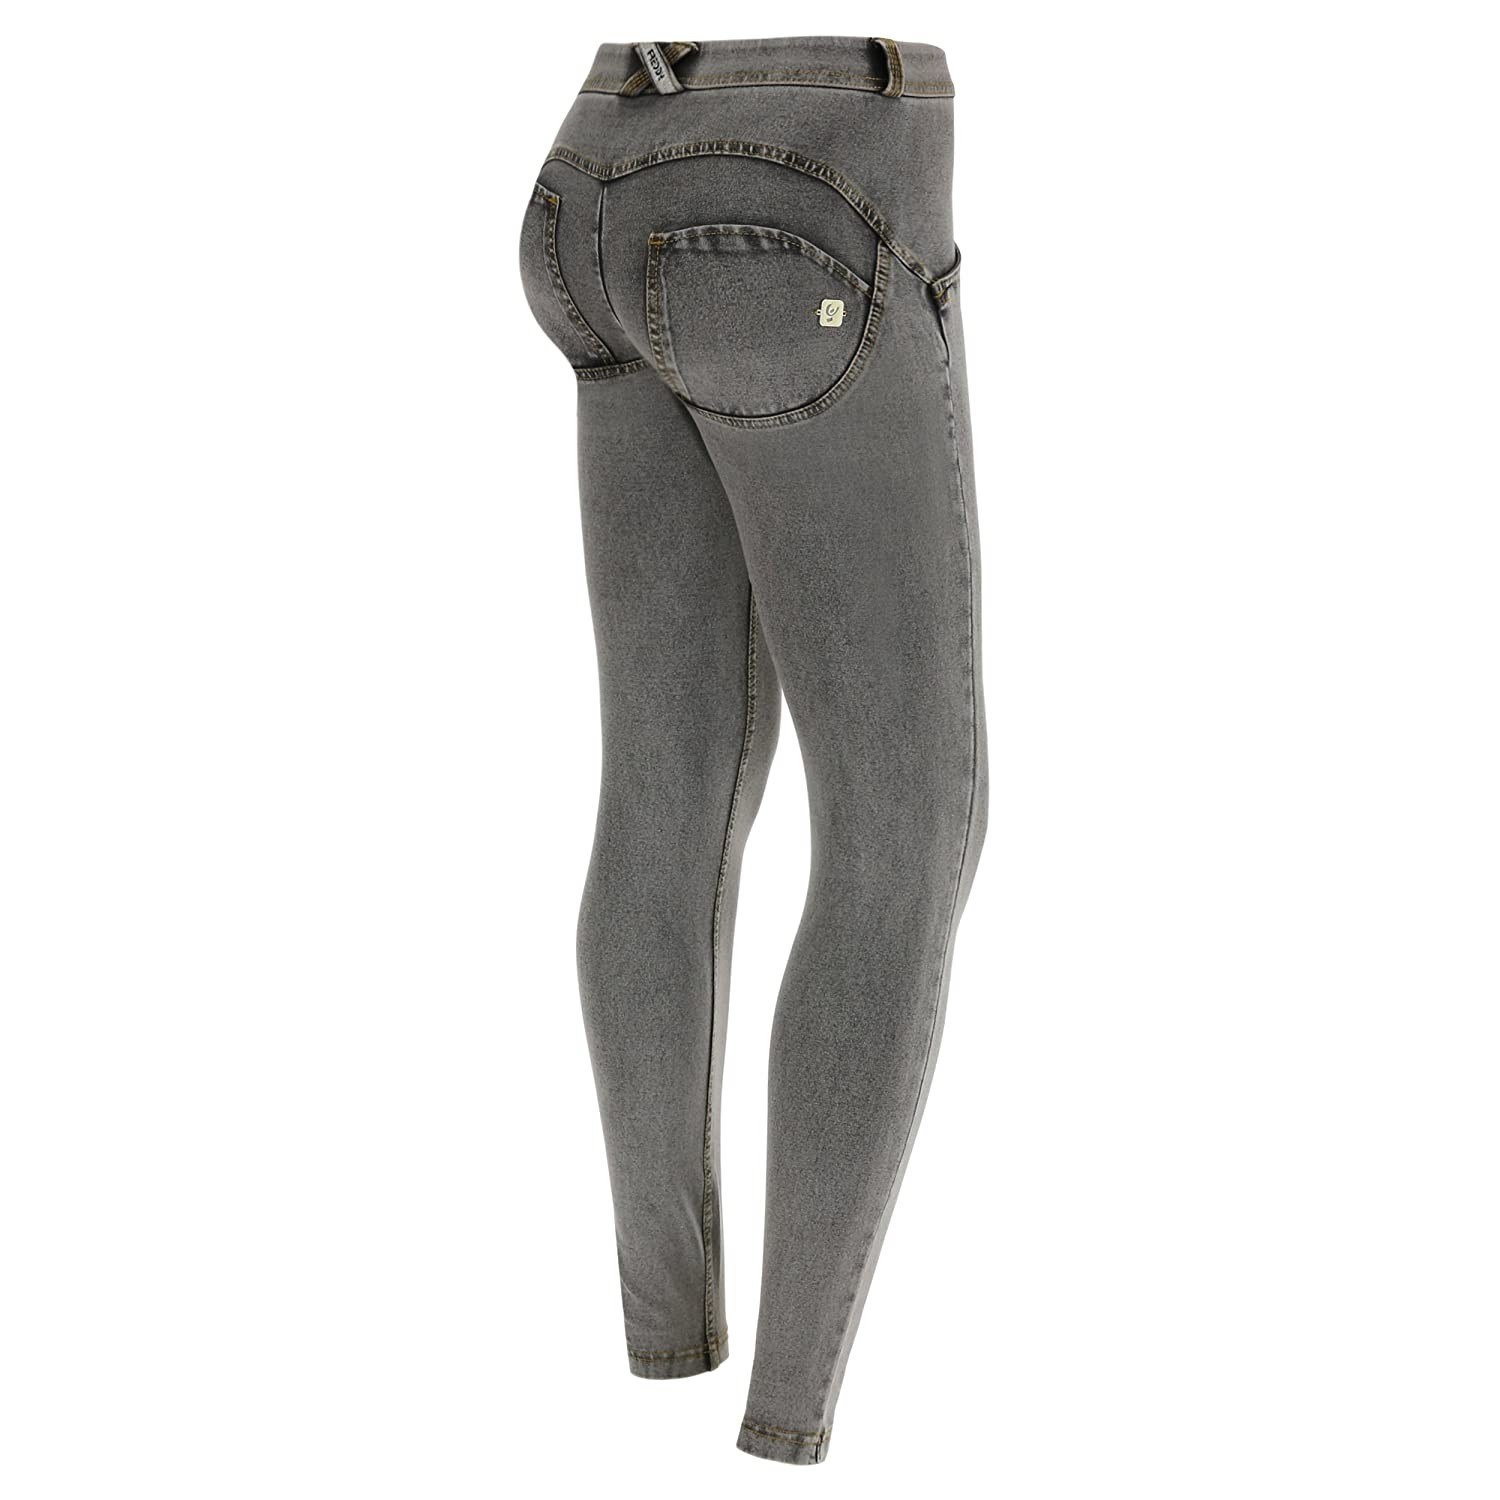 982226bd99026 Freddy WR.UP Skinny Jeans/Jeggings | Mid Waist, Full Length | Booty Shaping  Pants in Blue or Grey at Amazon Women's Jeans store